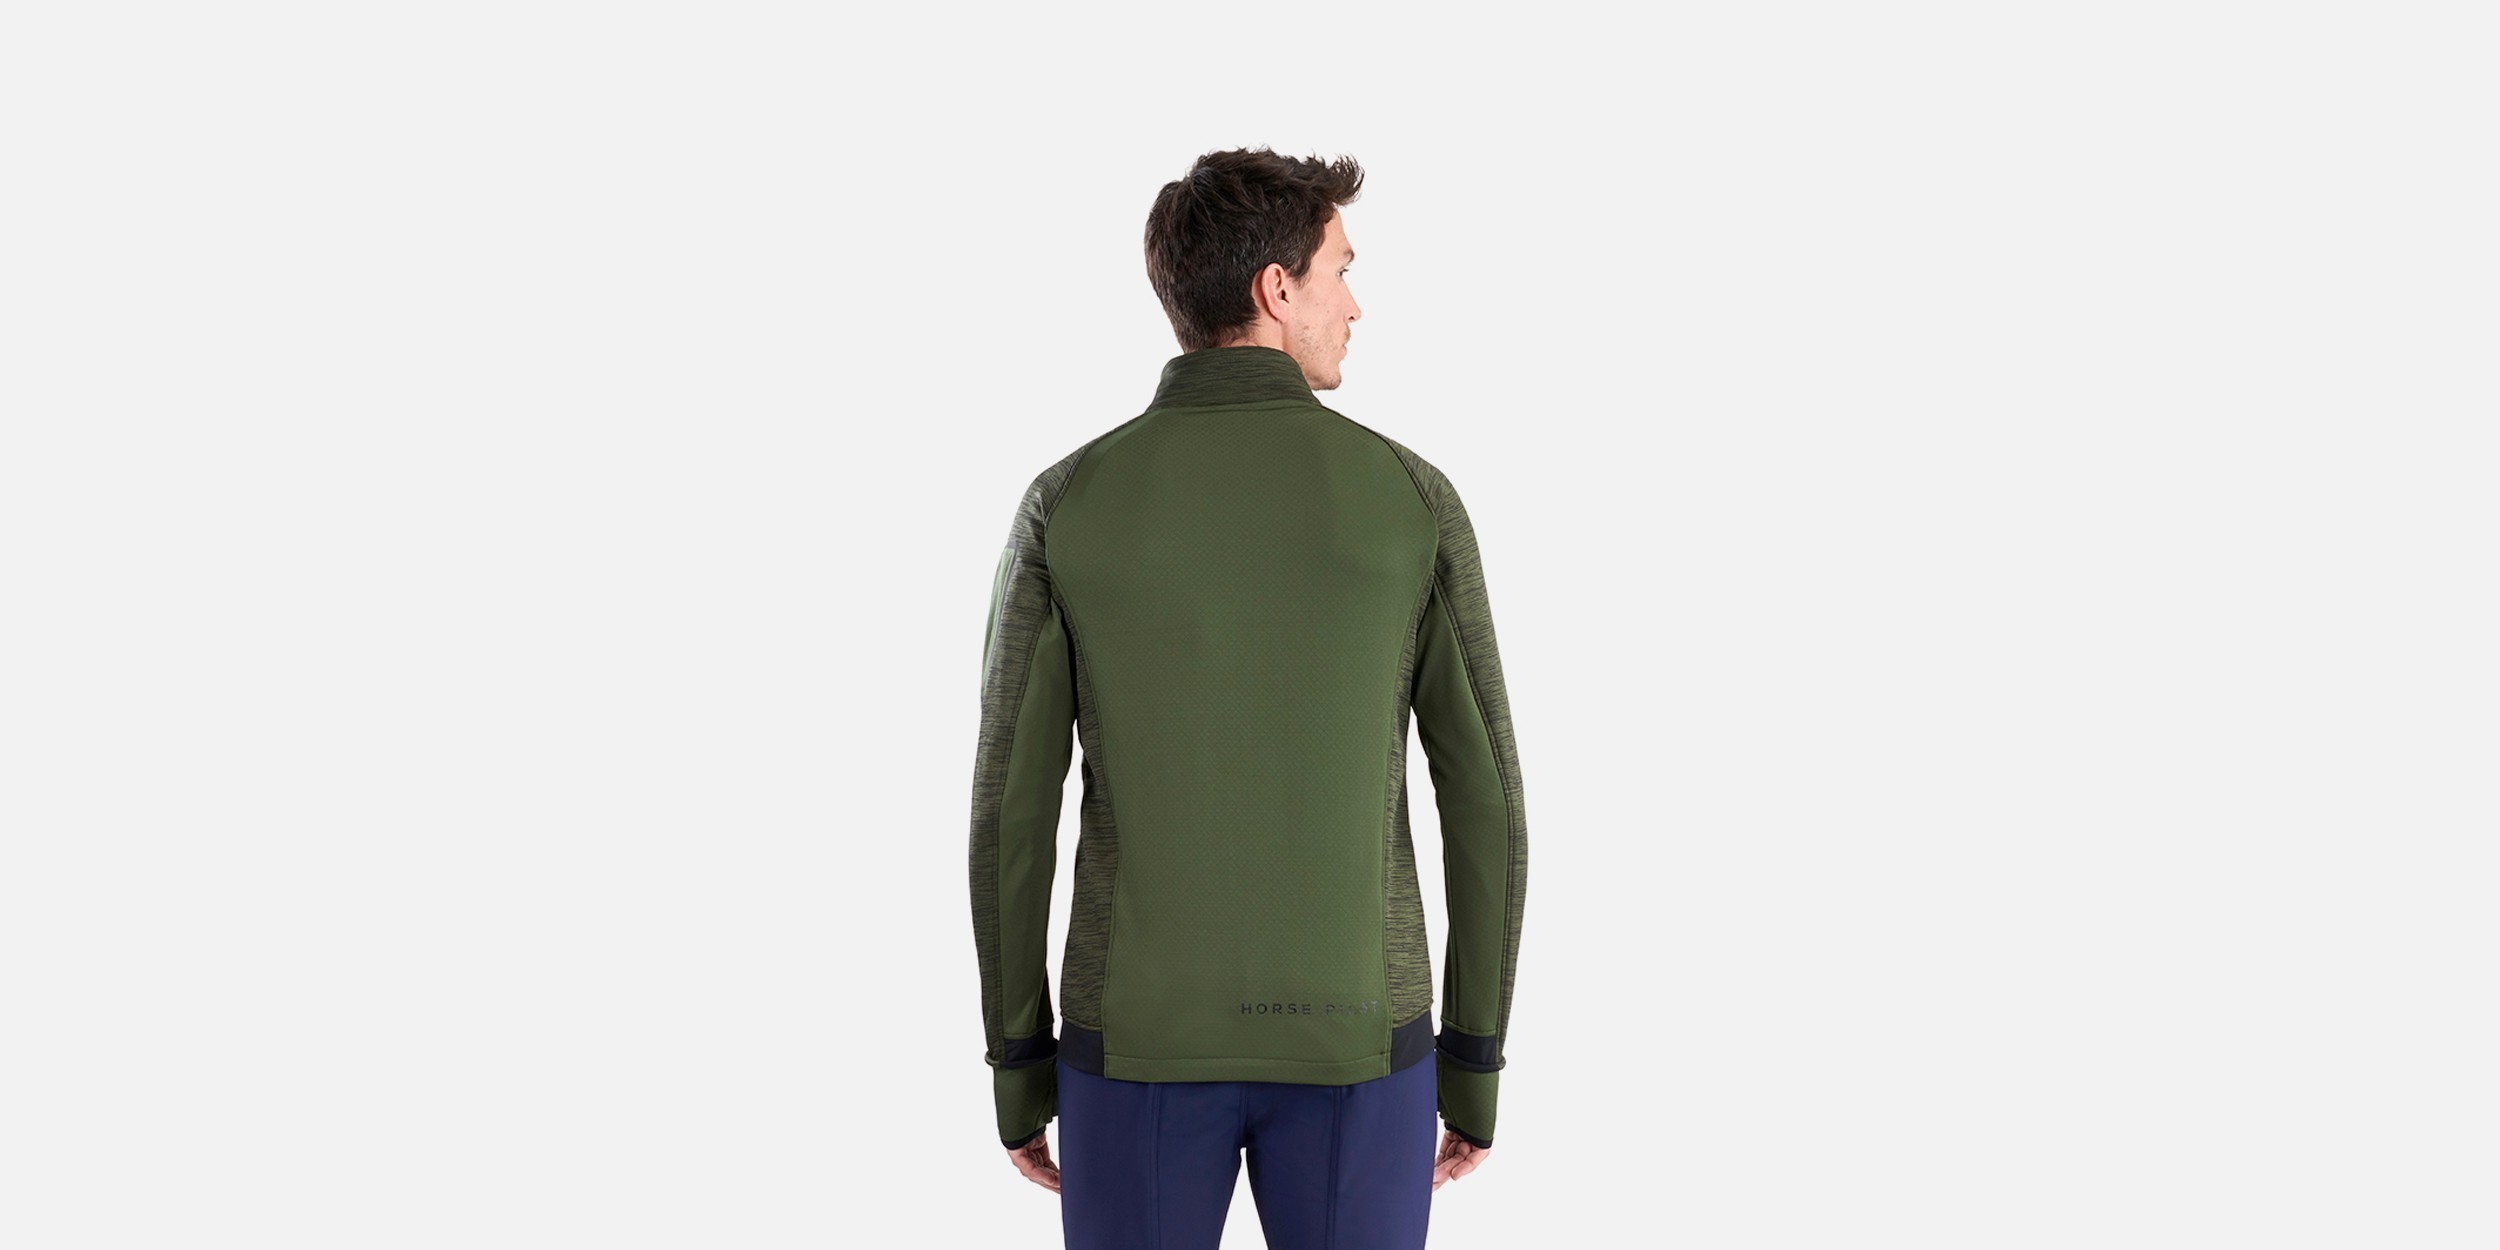 Riding sweatshirt for man